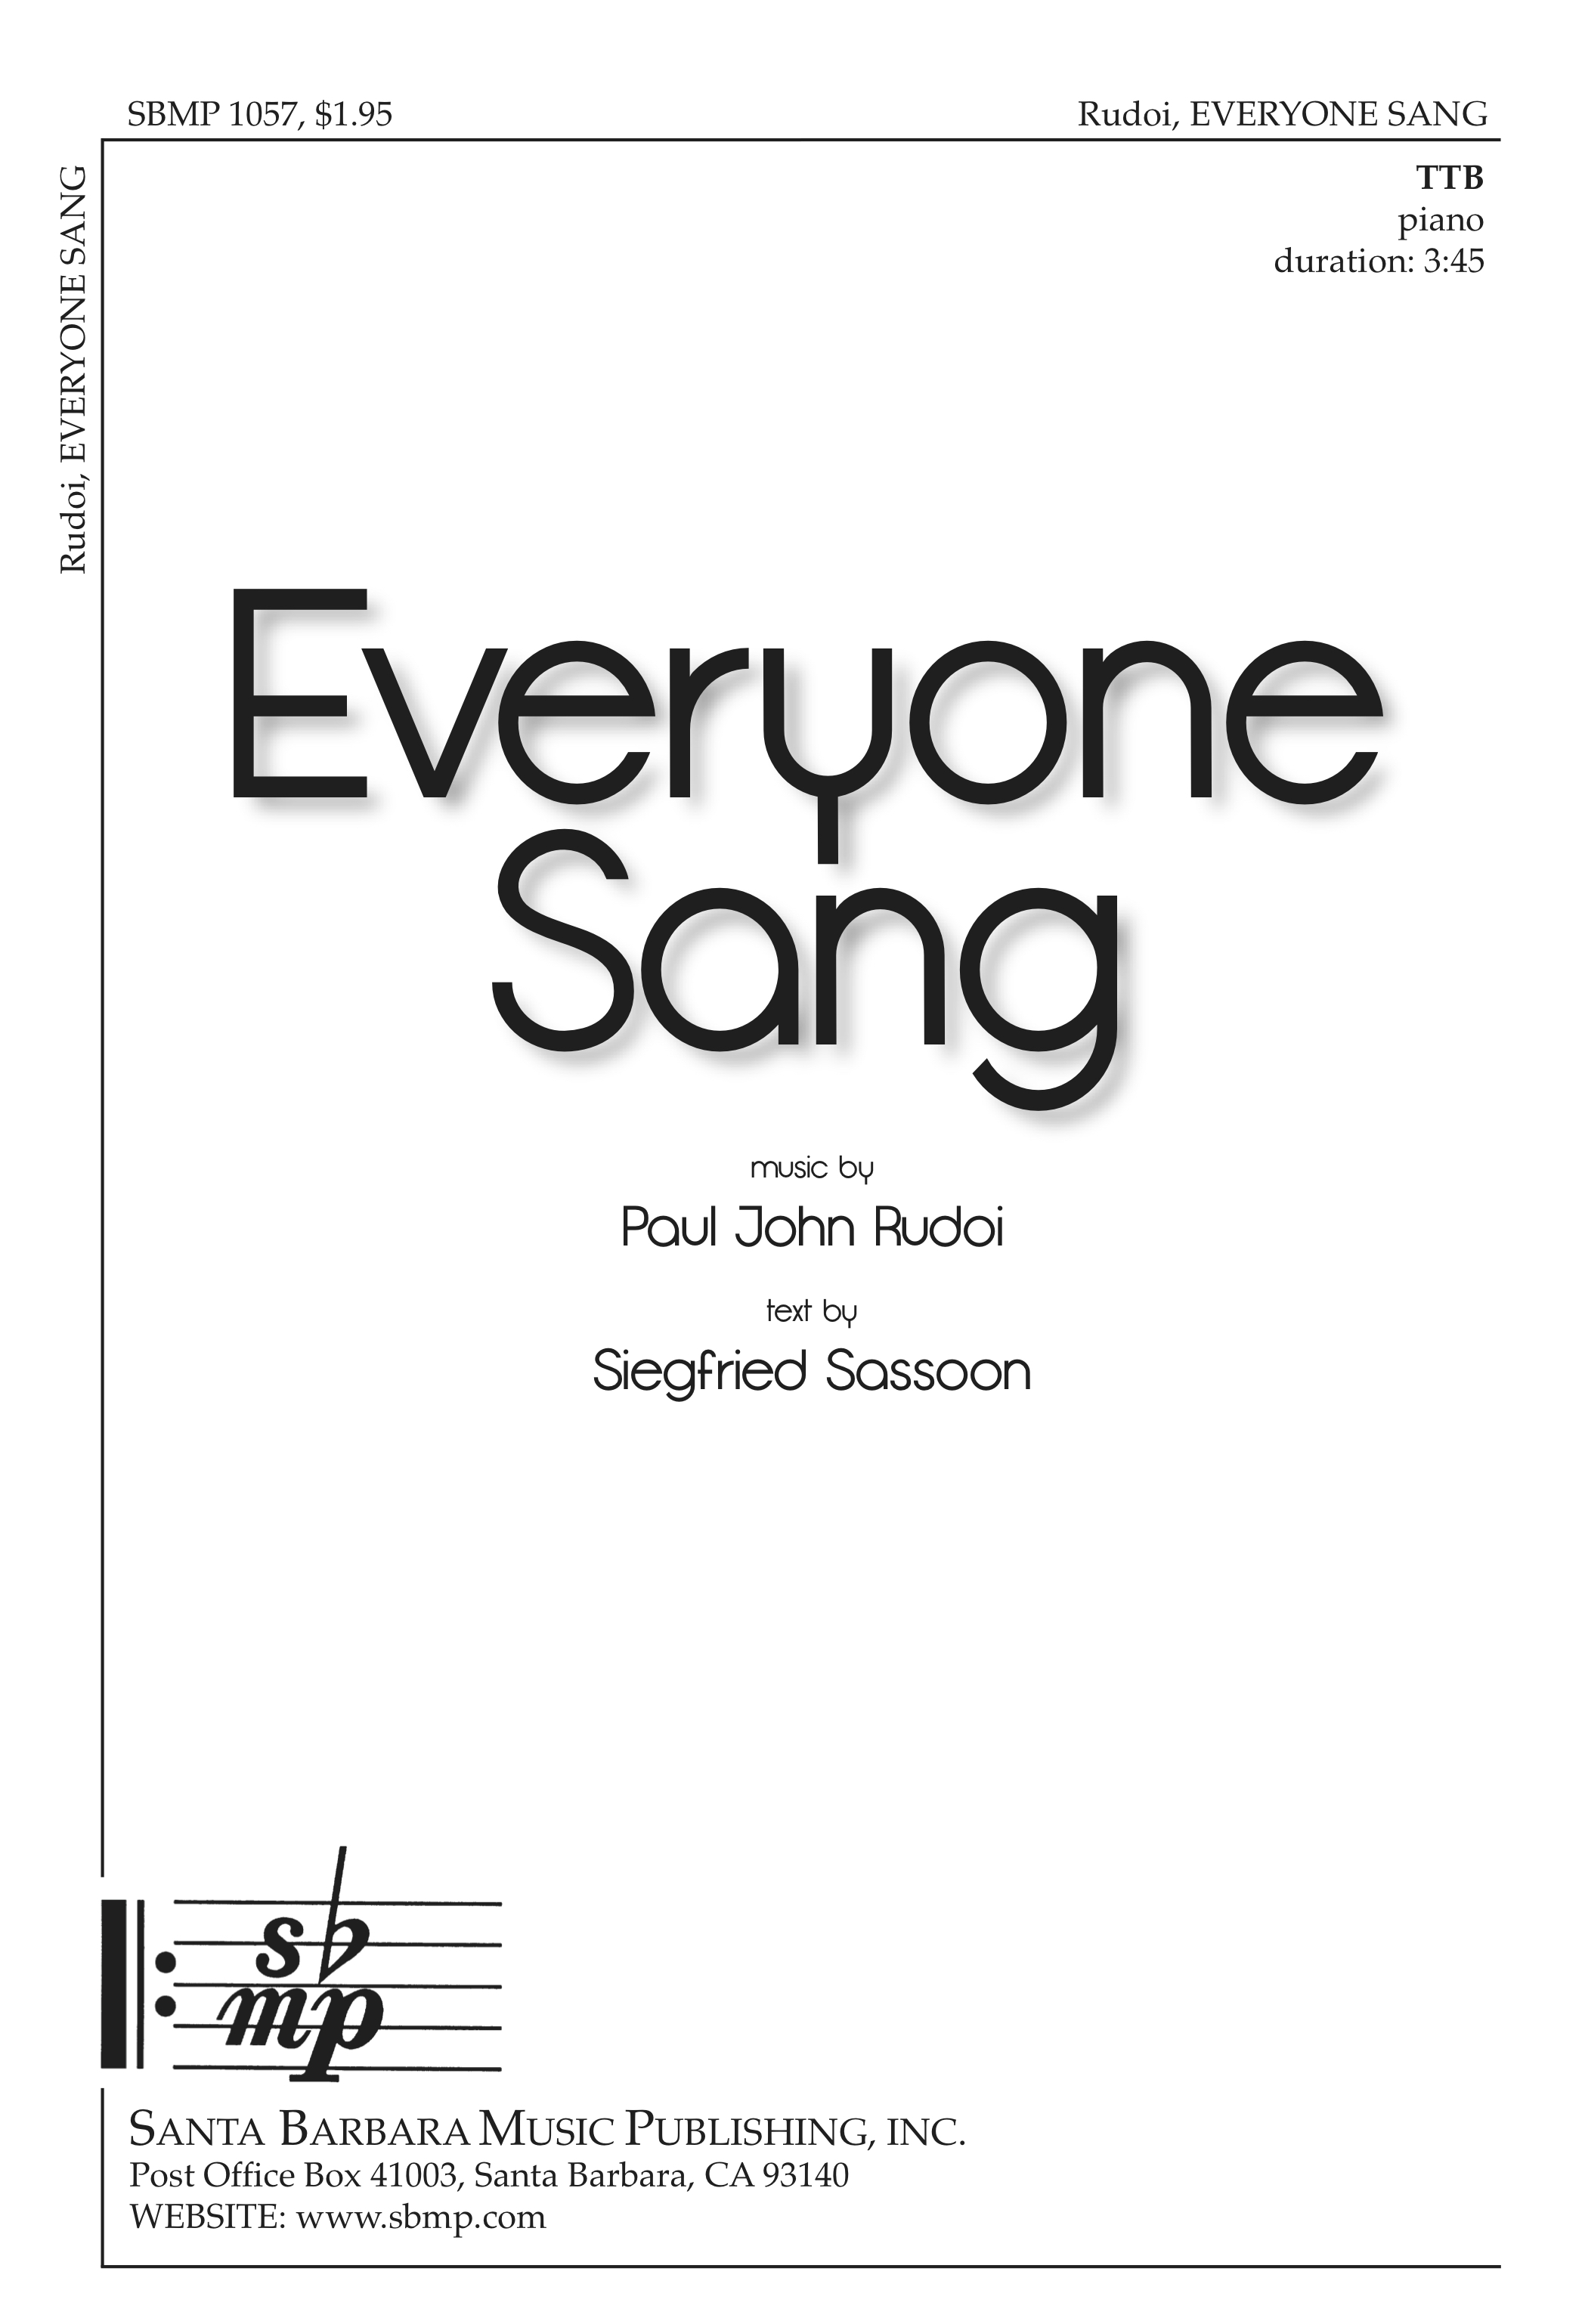 1057 Everyone Sang Cover.jpg